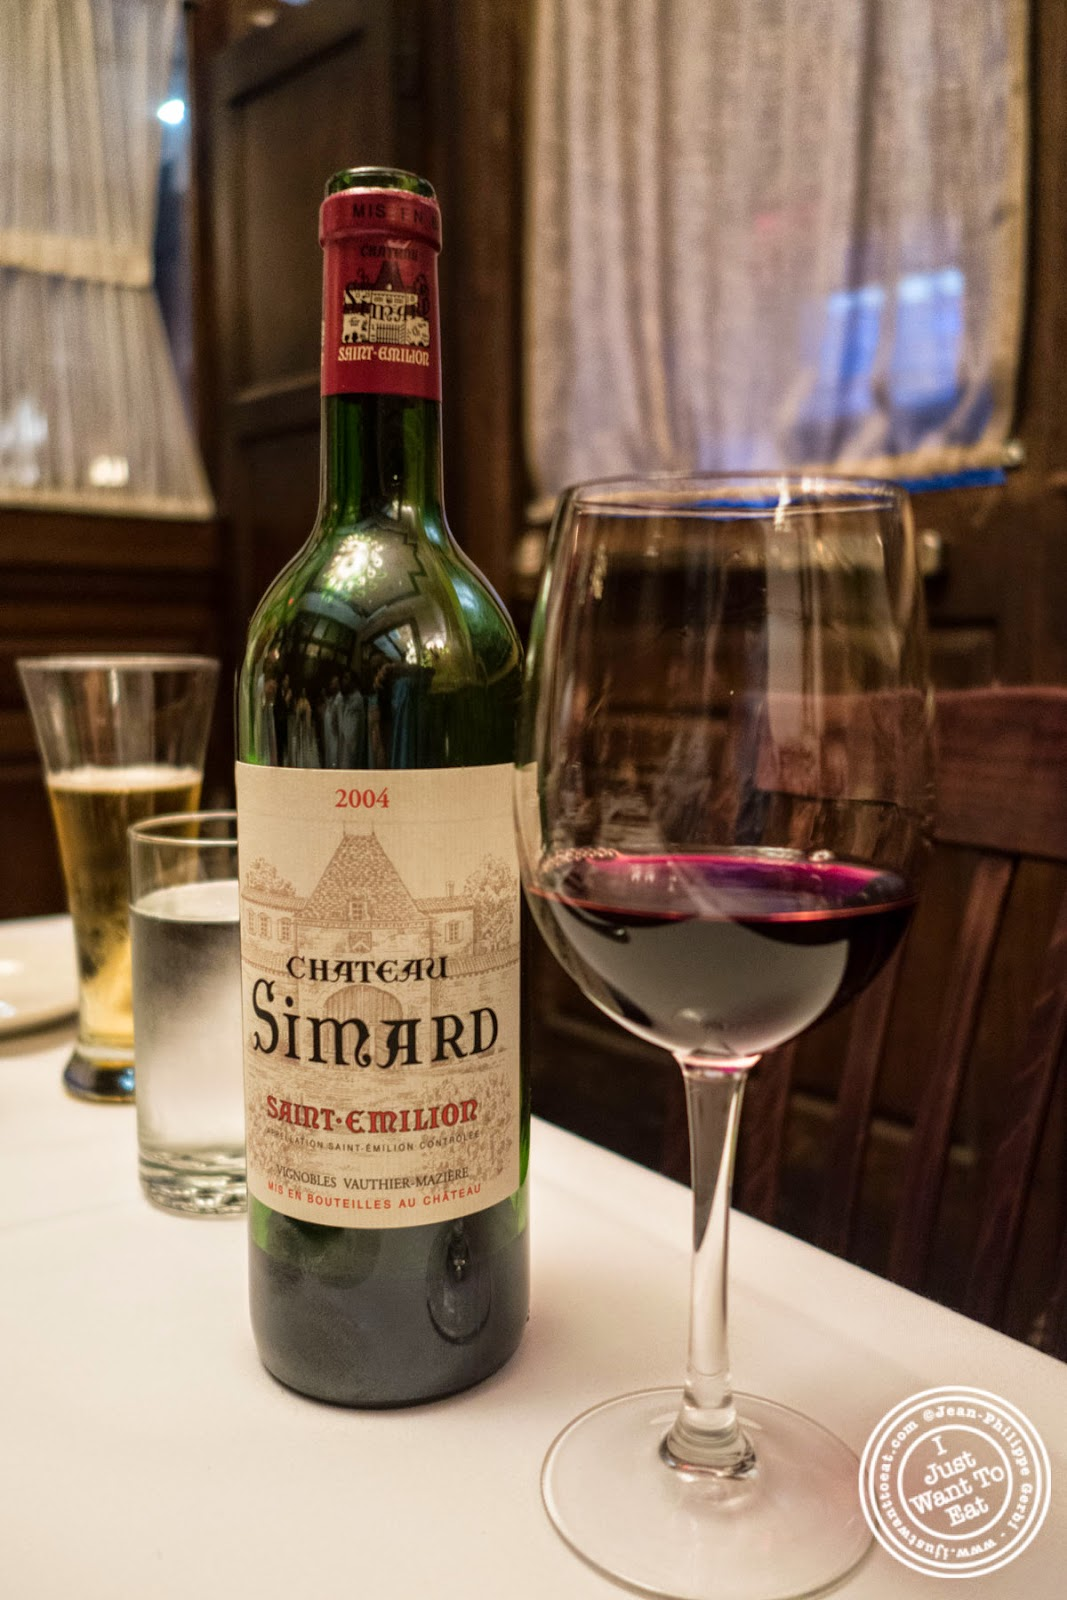 image of Chateau Simard Saint Emilion 2004 at Bobby Van's Grill in New York, NY